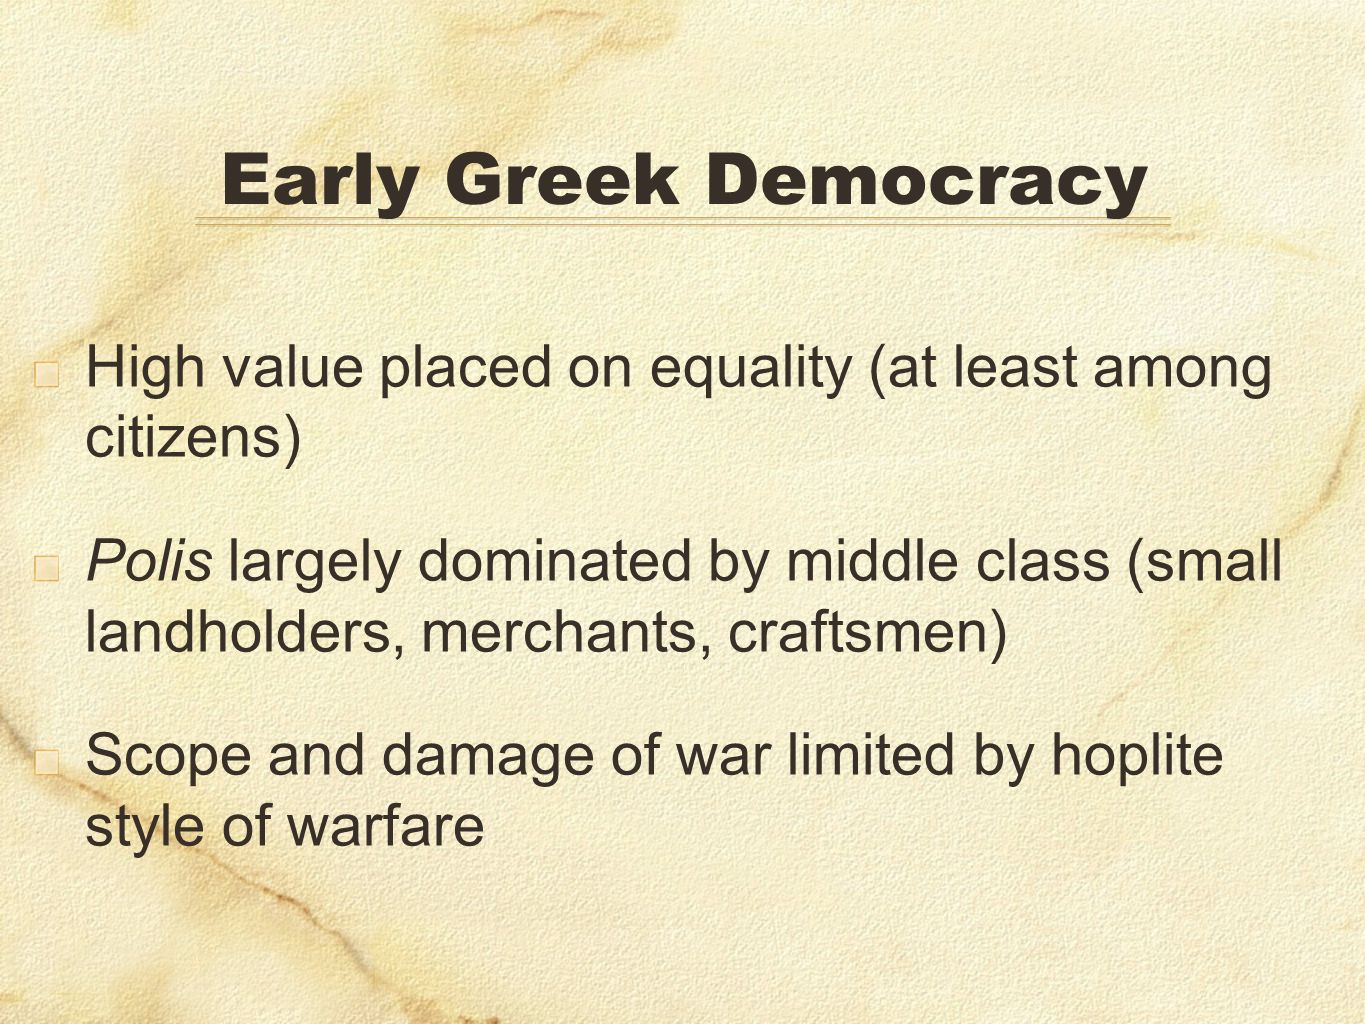 Early Greek Democracy High value placed on equality (at least among citizens)